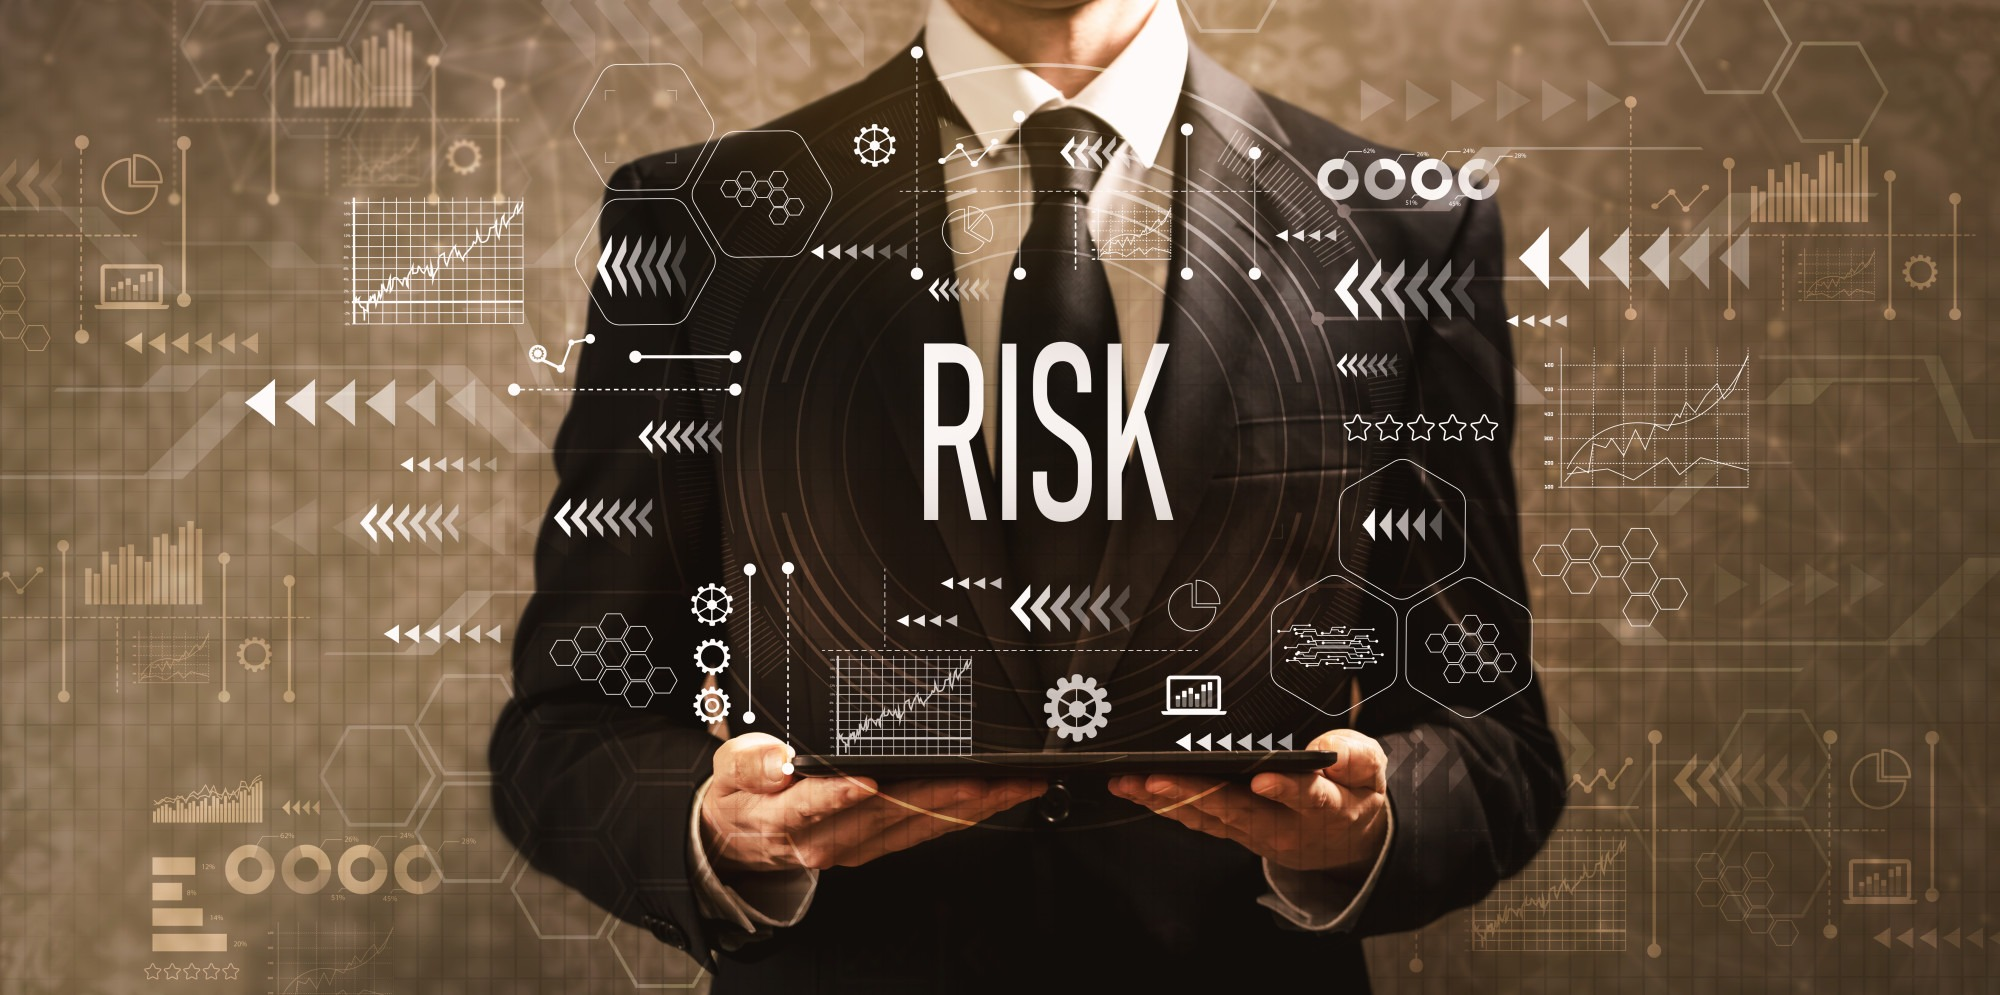 7 Reasons Why Your Business Needs a Risk Management Plan